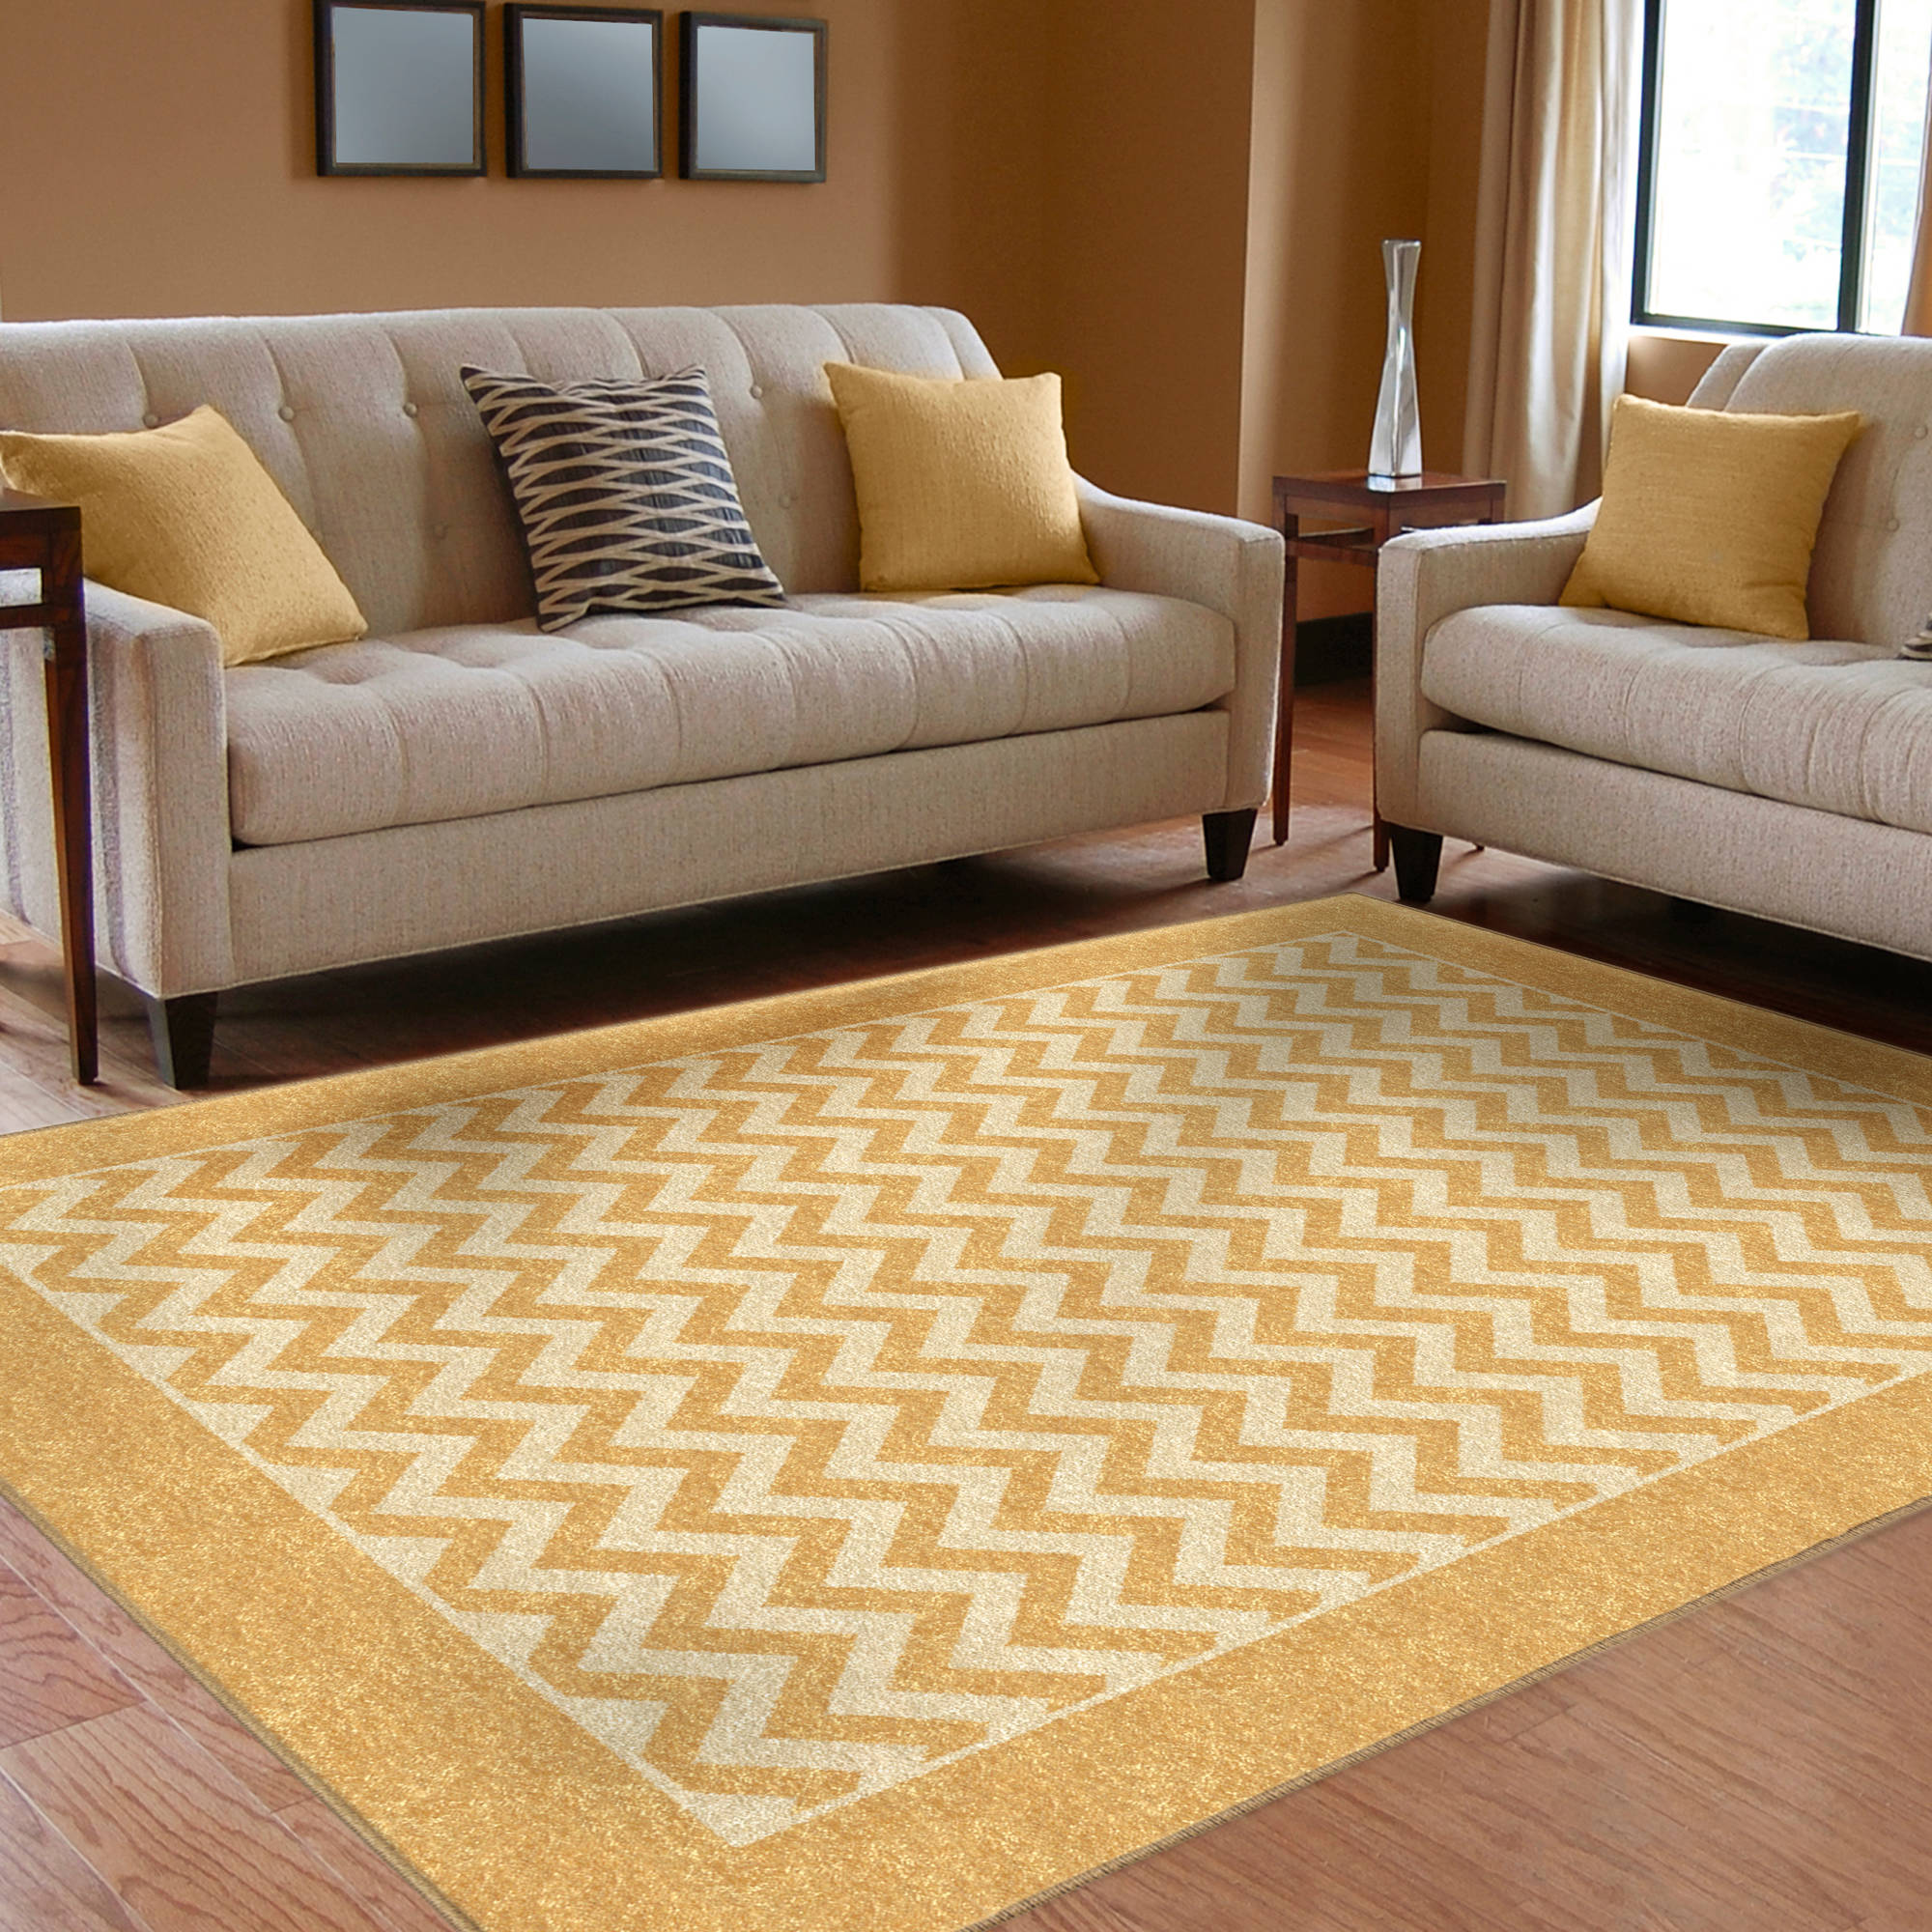 Orian Chevron Strip Woven Olefin Area Rug, Gold Available In Multiple Sizes